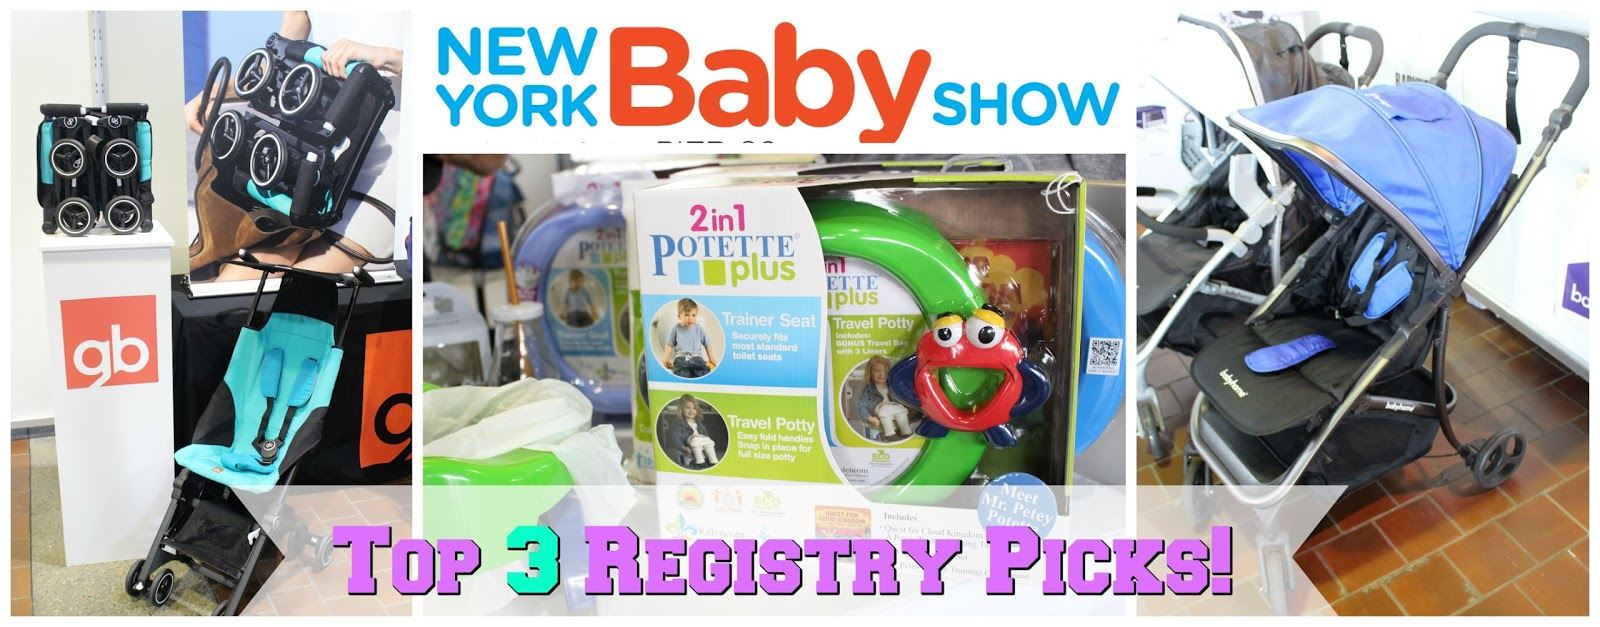 Free Tickets to the New York Baby Show 2017! #MTBloggerLounge ...